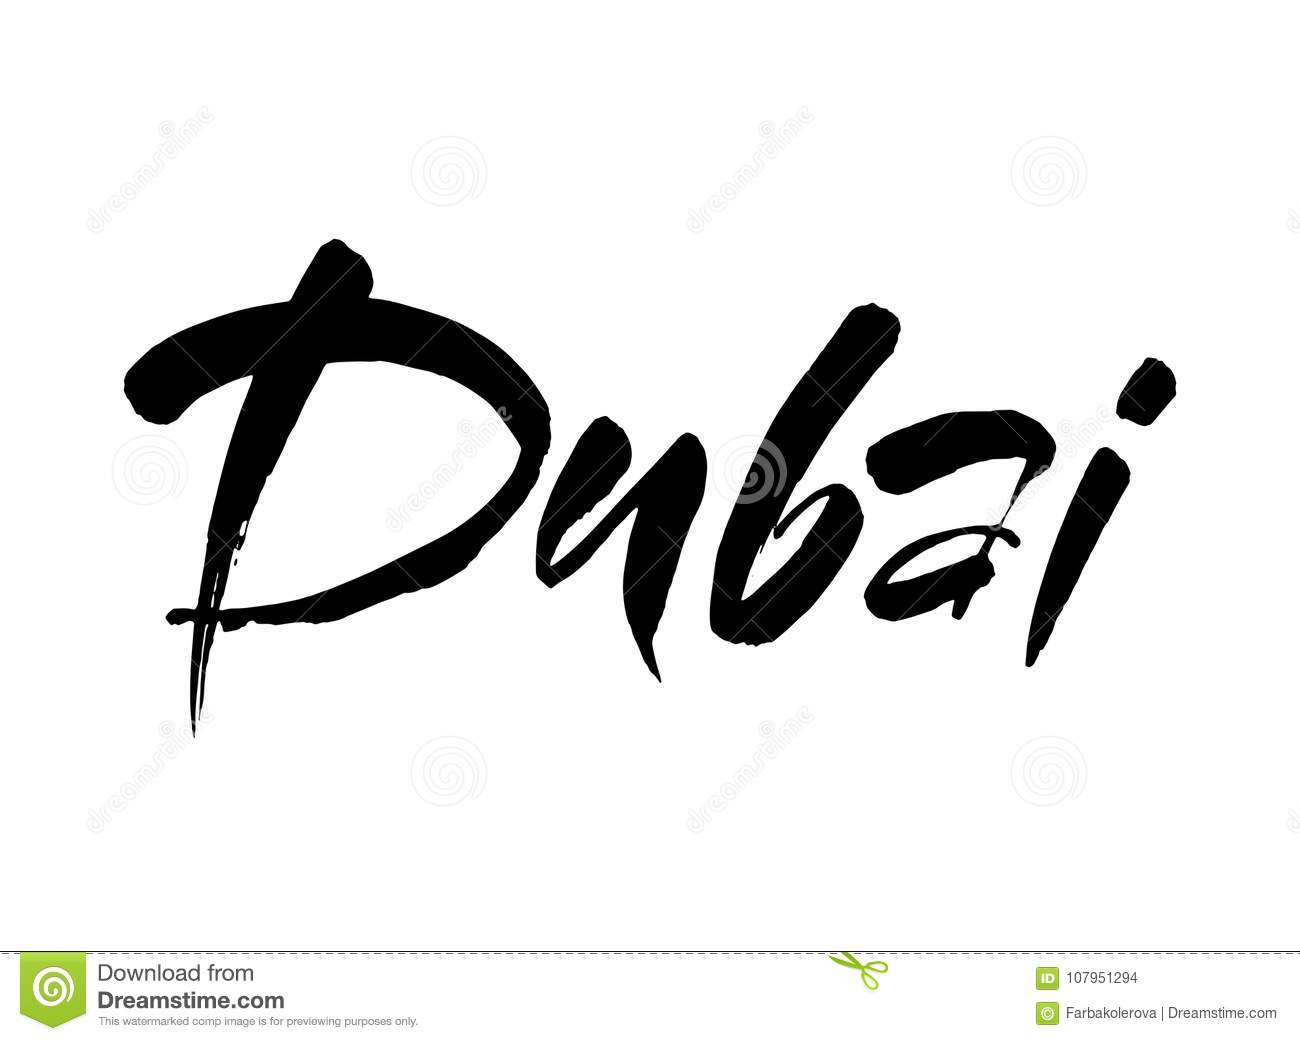 Brush Lettering Of UAE Dubai City Modern Calligraphy Isolated On